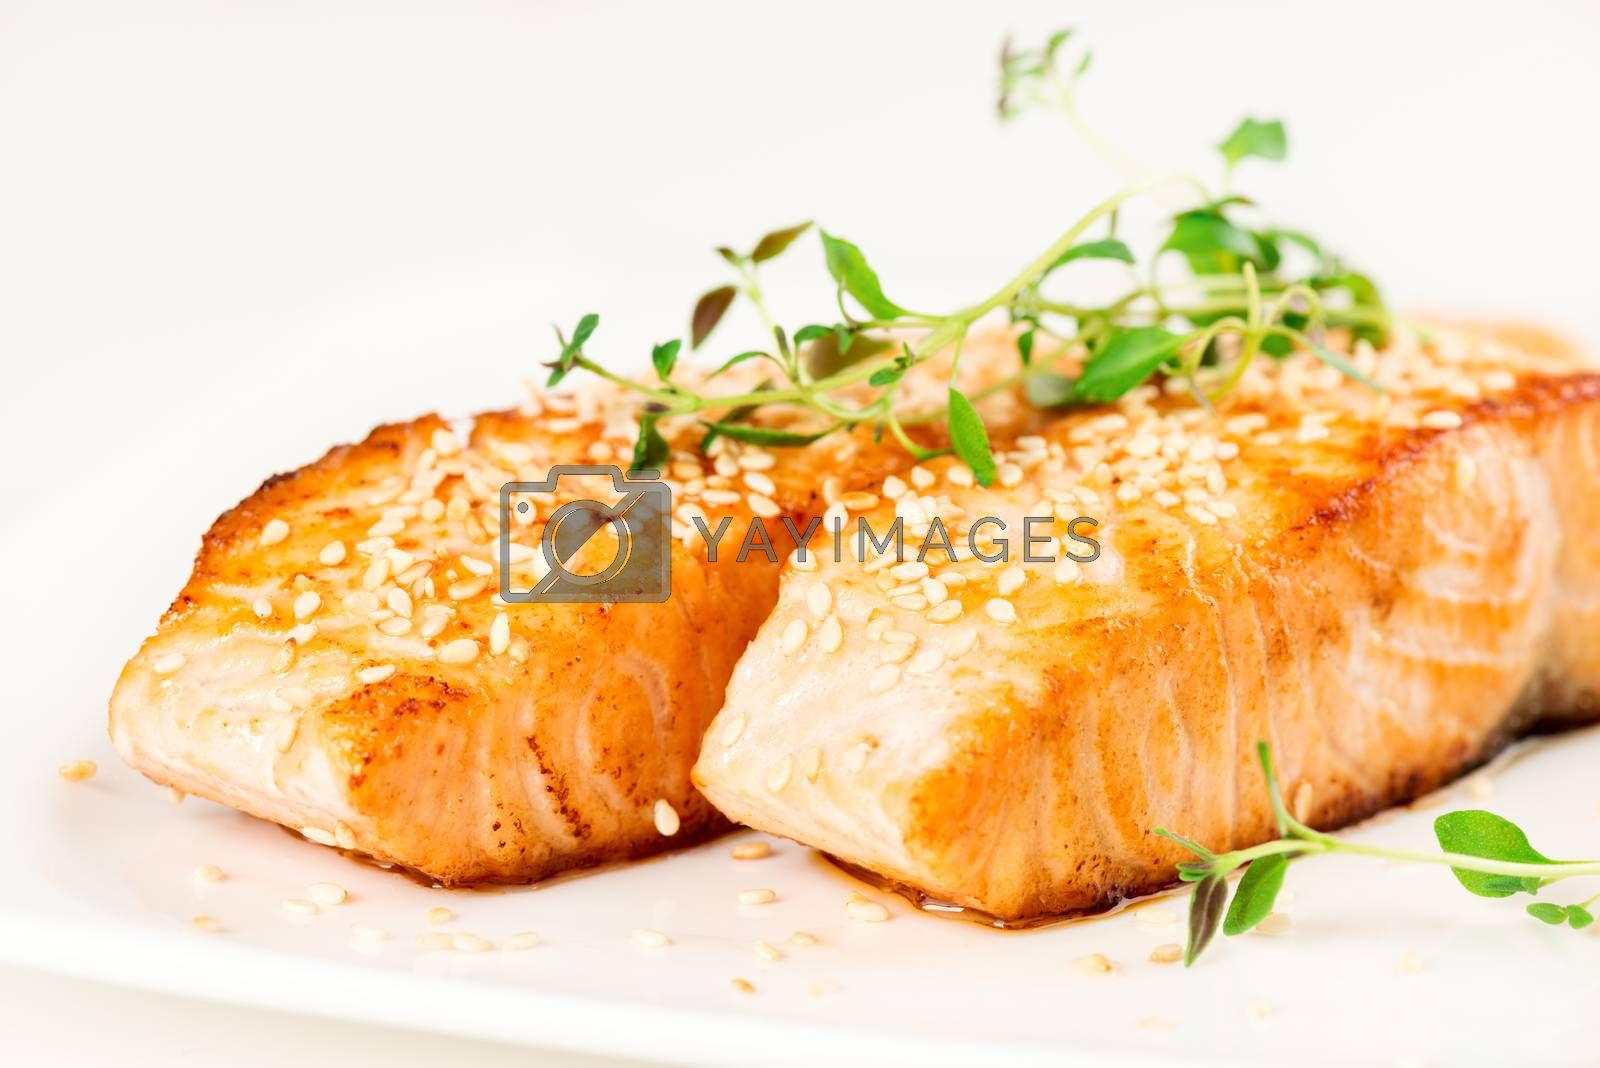 Grilled salmon on white plate by Nanisimova